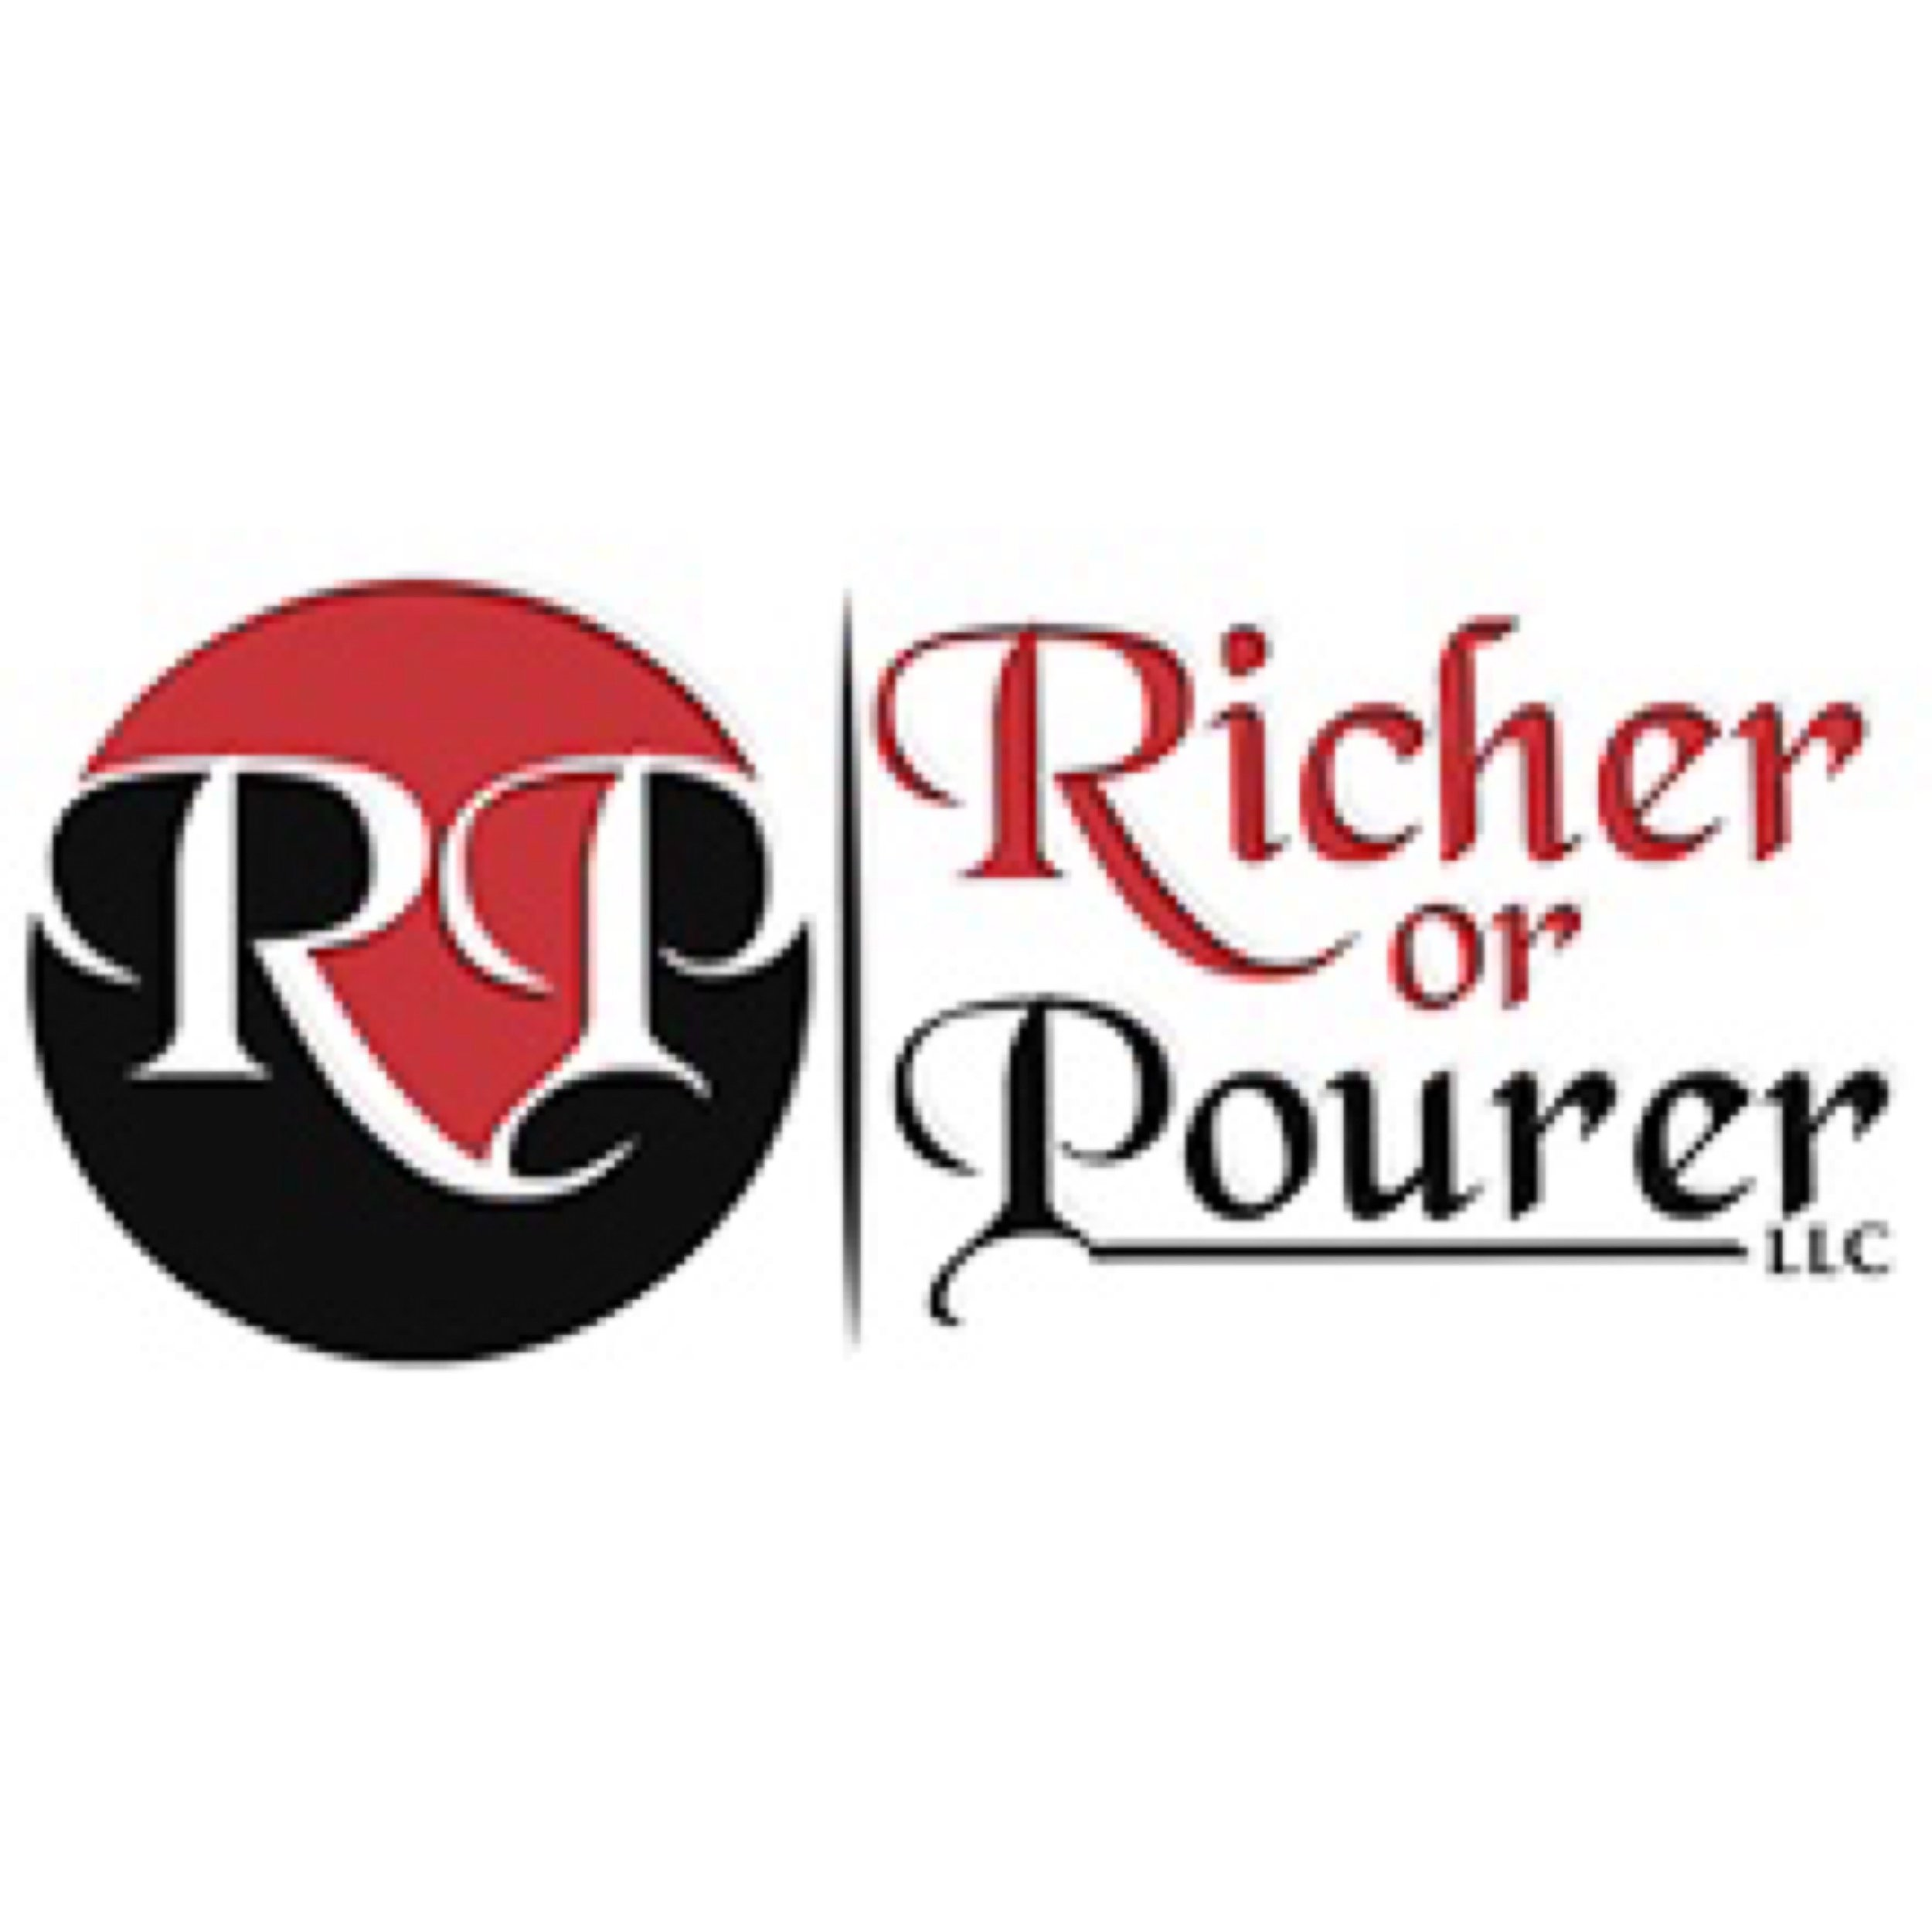 Richer or Pourer Bartendinginfo@RicherOrPourer.com(281) 766-0093 -